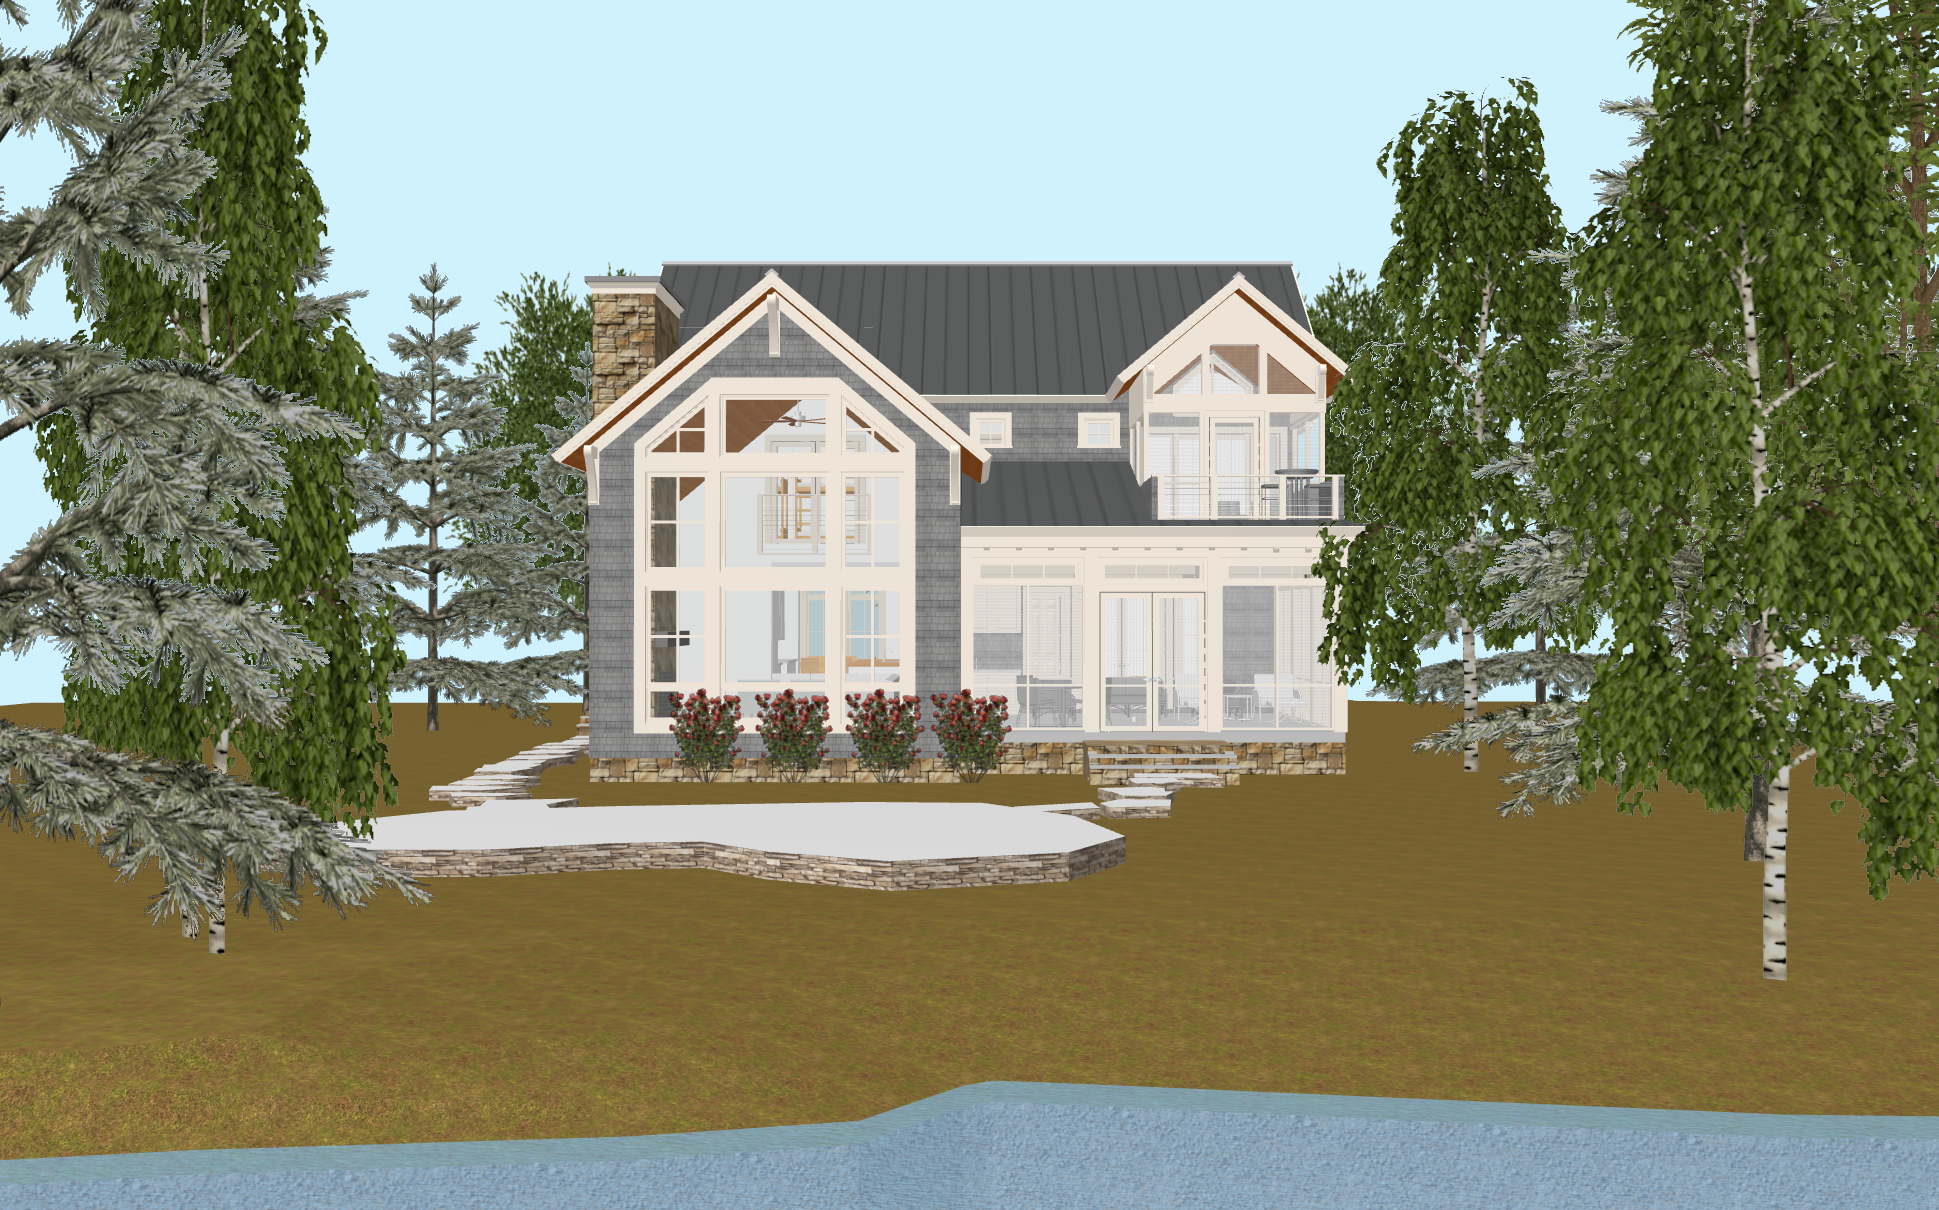 NorthernMichiganCottageArchitect